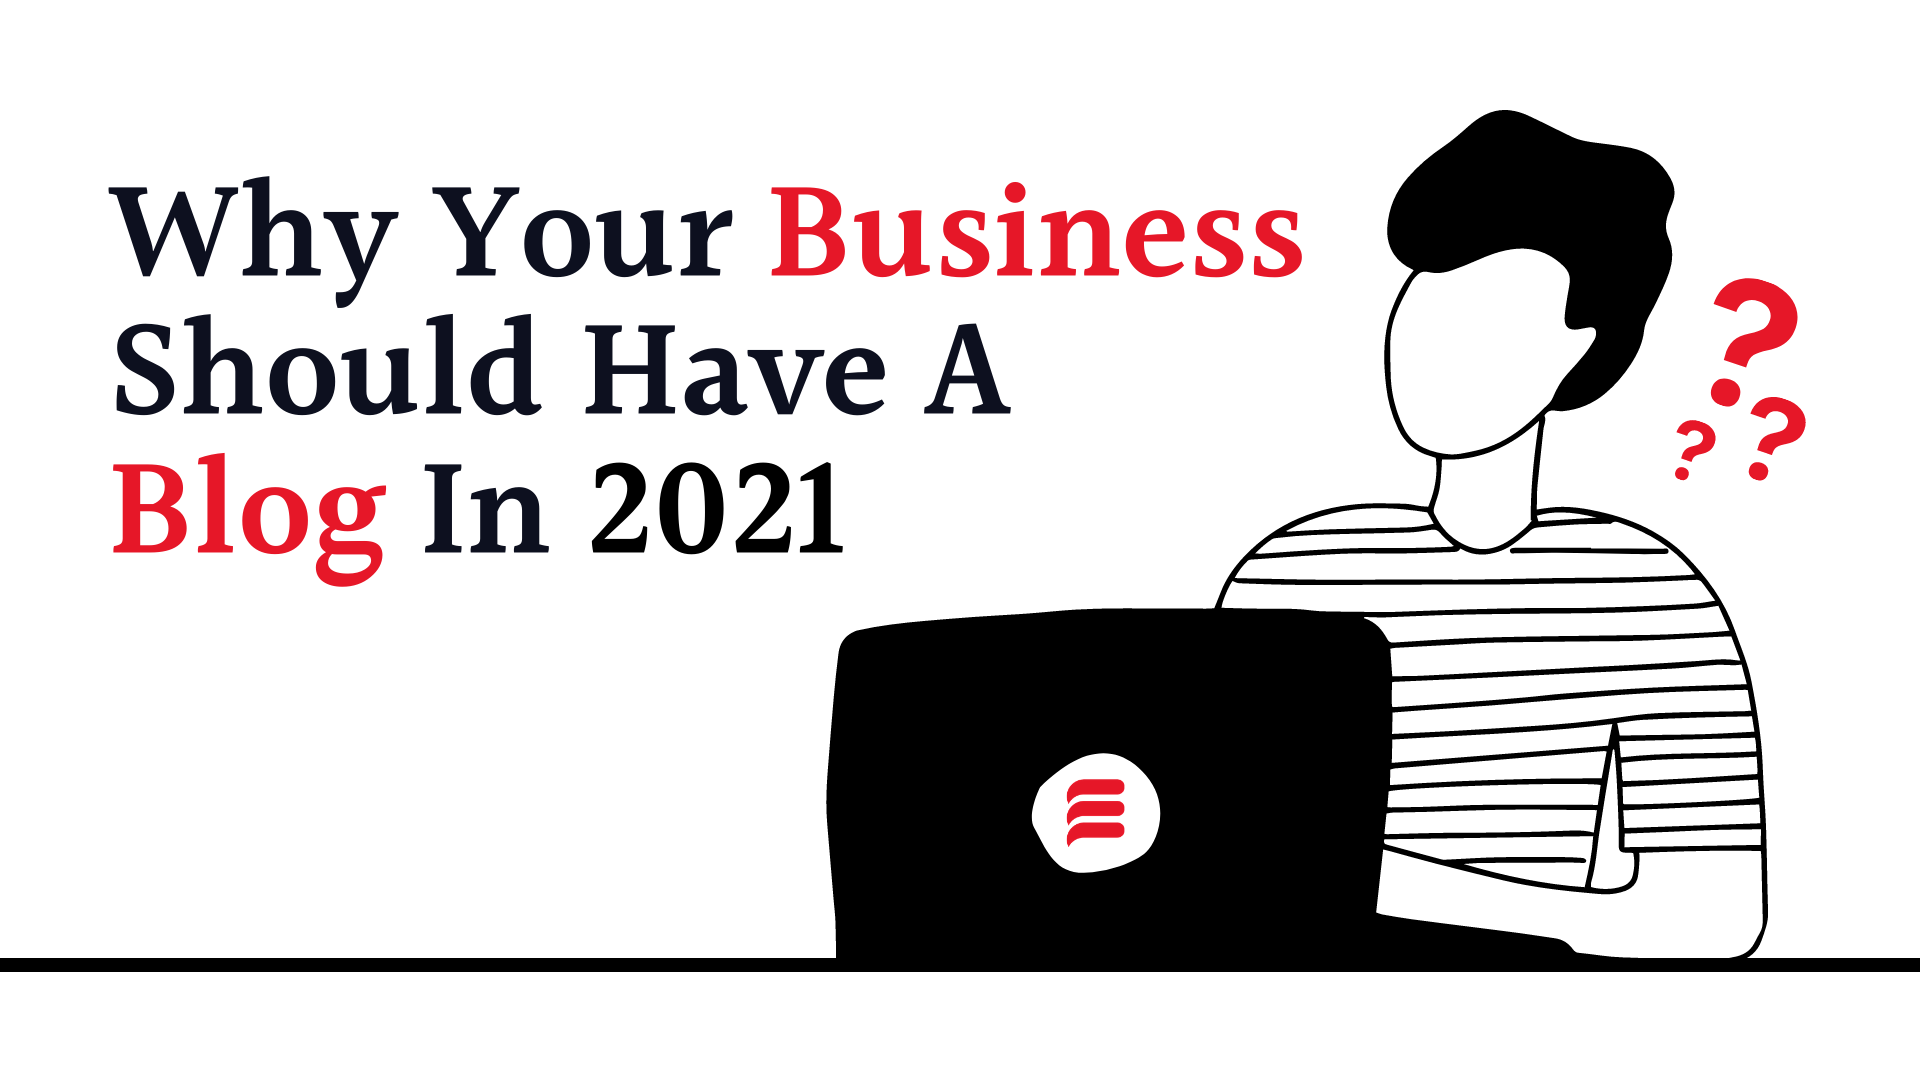 Why Your Business Should Have a Blog in 2021